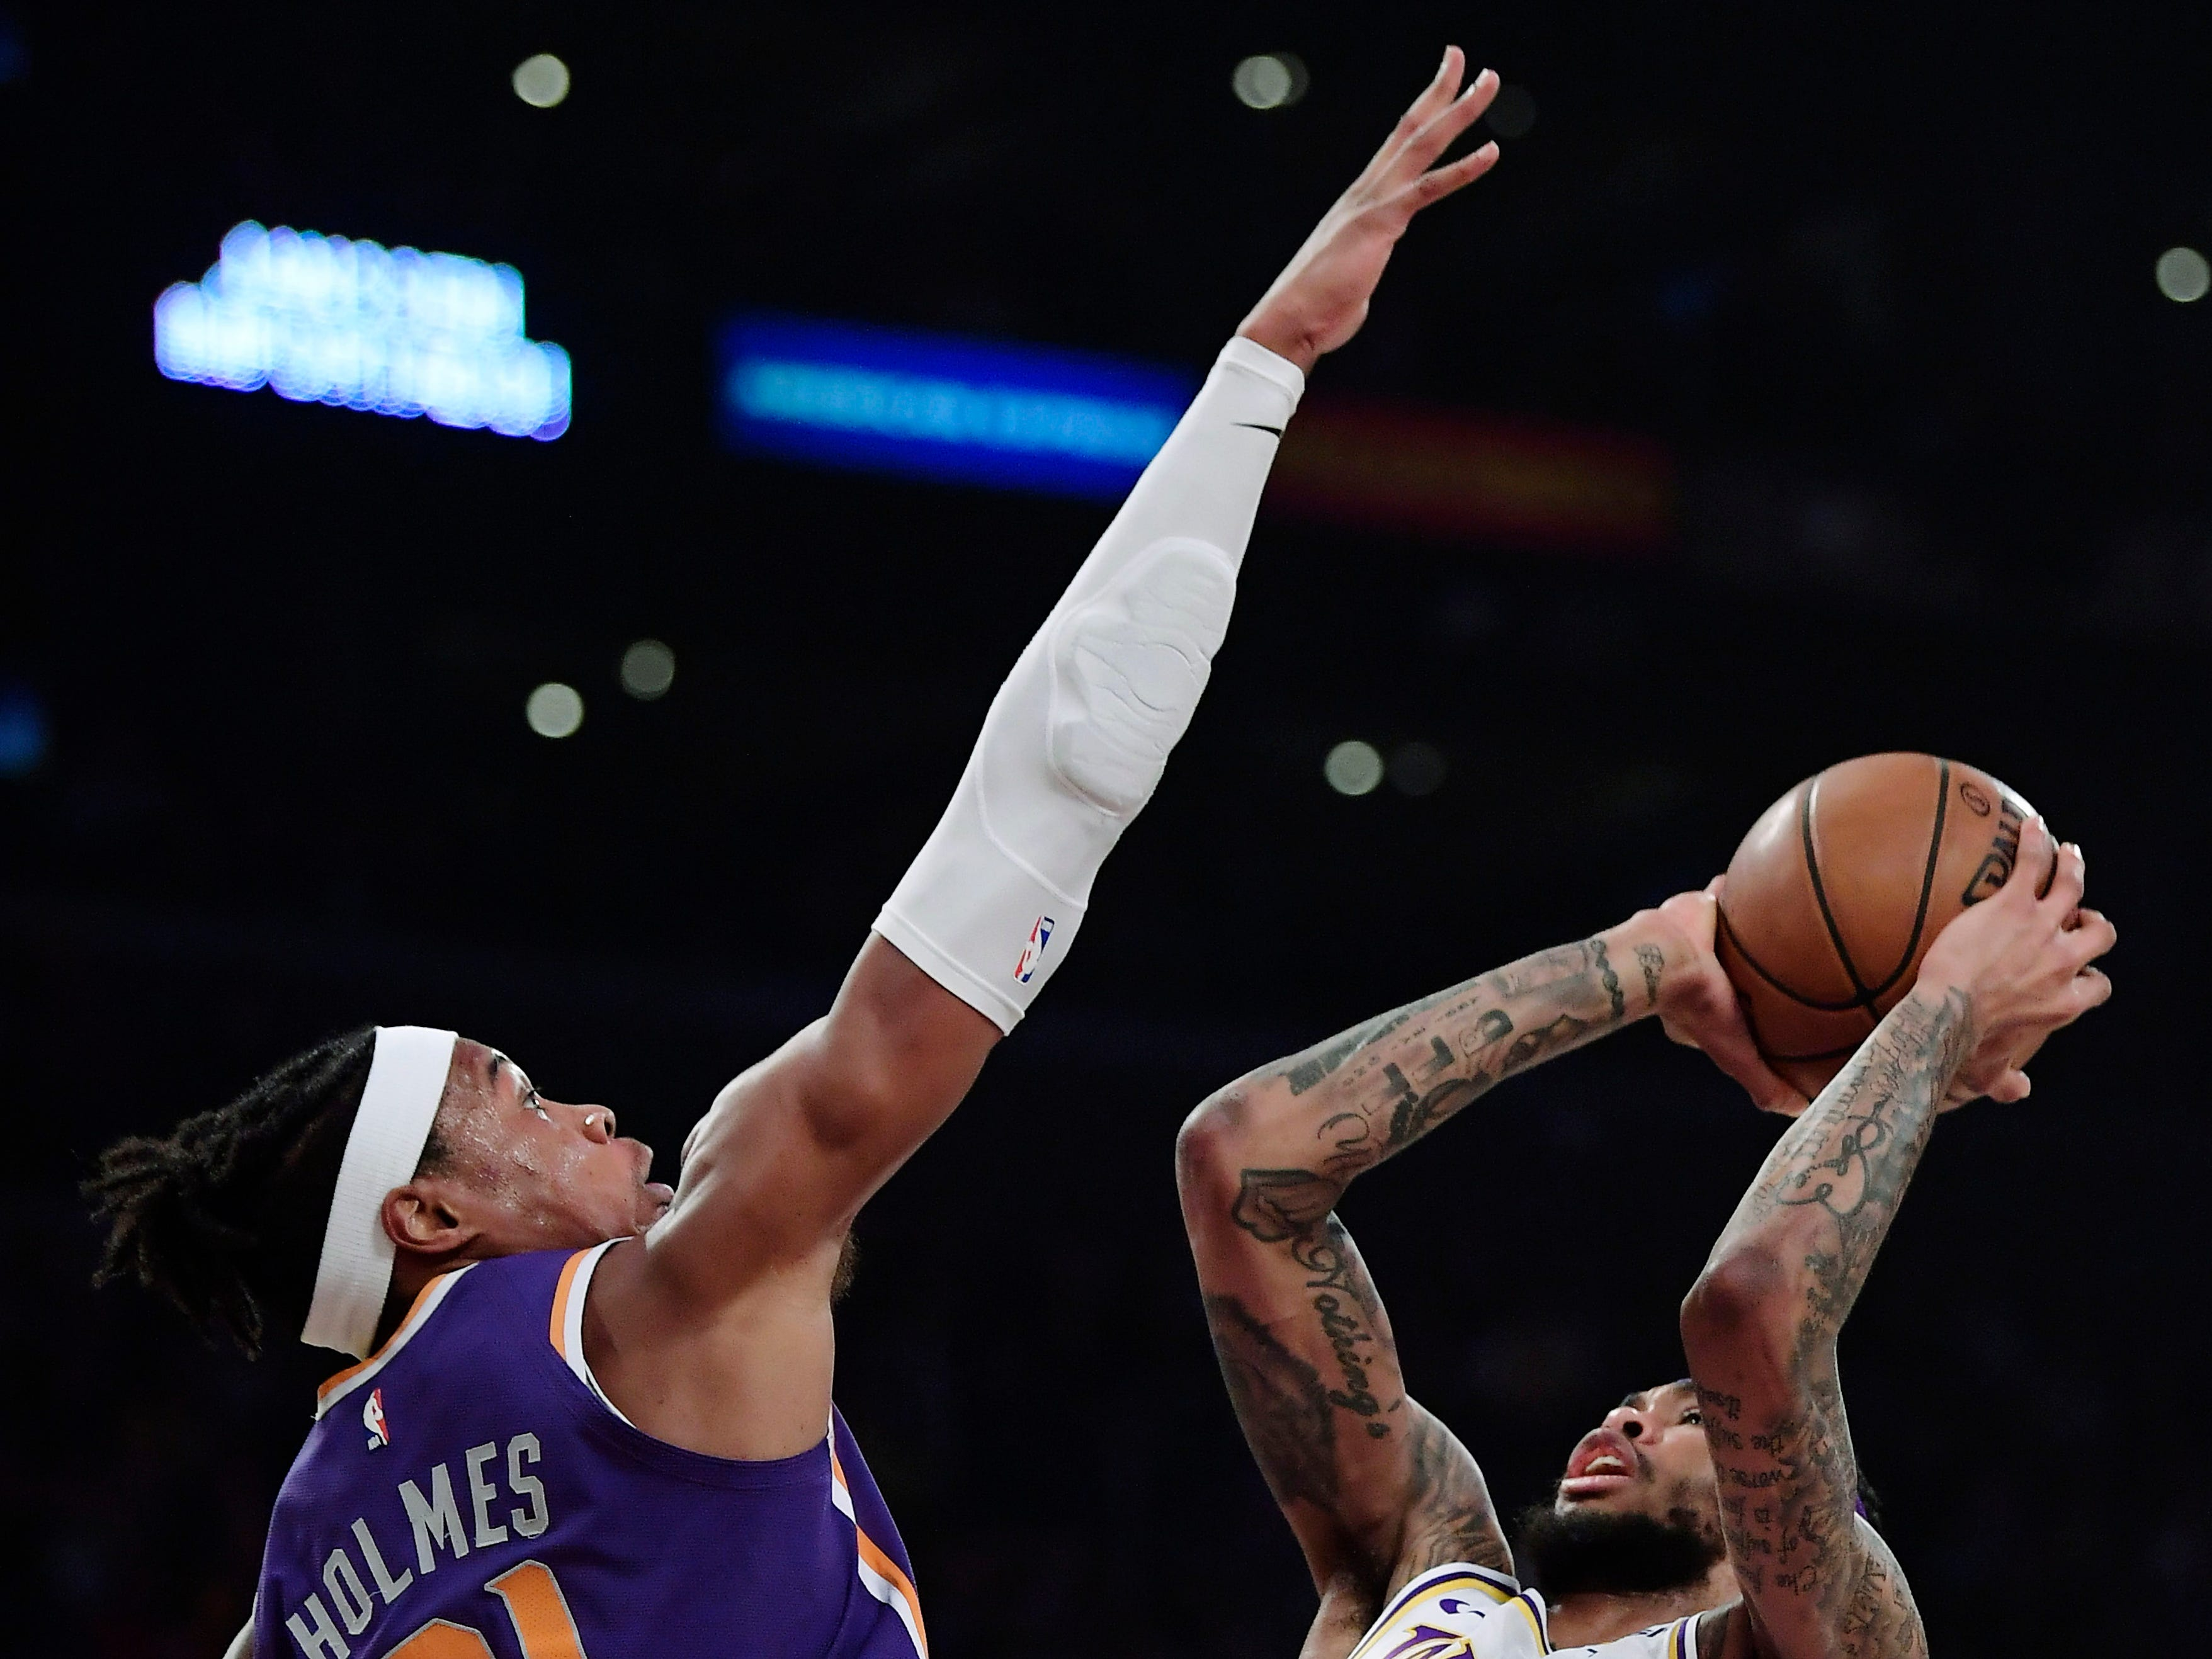 Los Angeles Lakers forward Brandon Ingram, right, shoots as Phoenix Suns forward Richaun Holmes defends during the first half on Sunday, Jan. 27, 2019, in Los Angeles. (AP Photo/Mark J. Terrill)